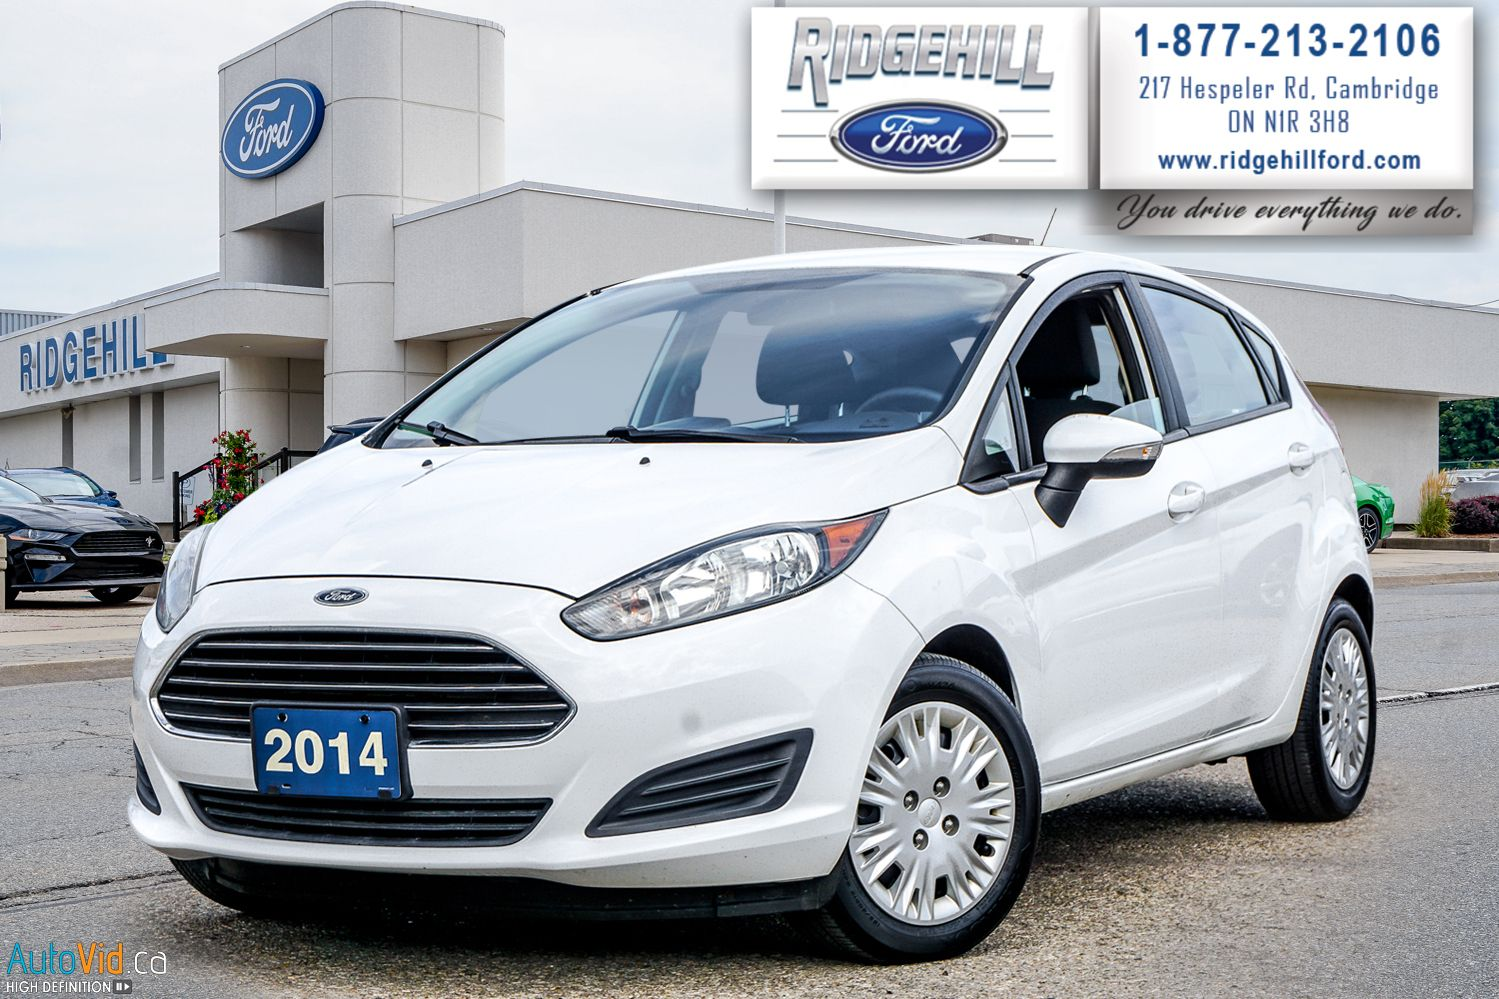 2014 Ford Fiesta Image